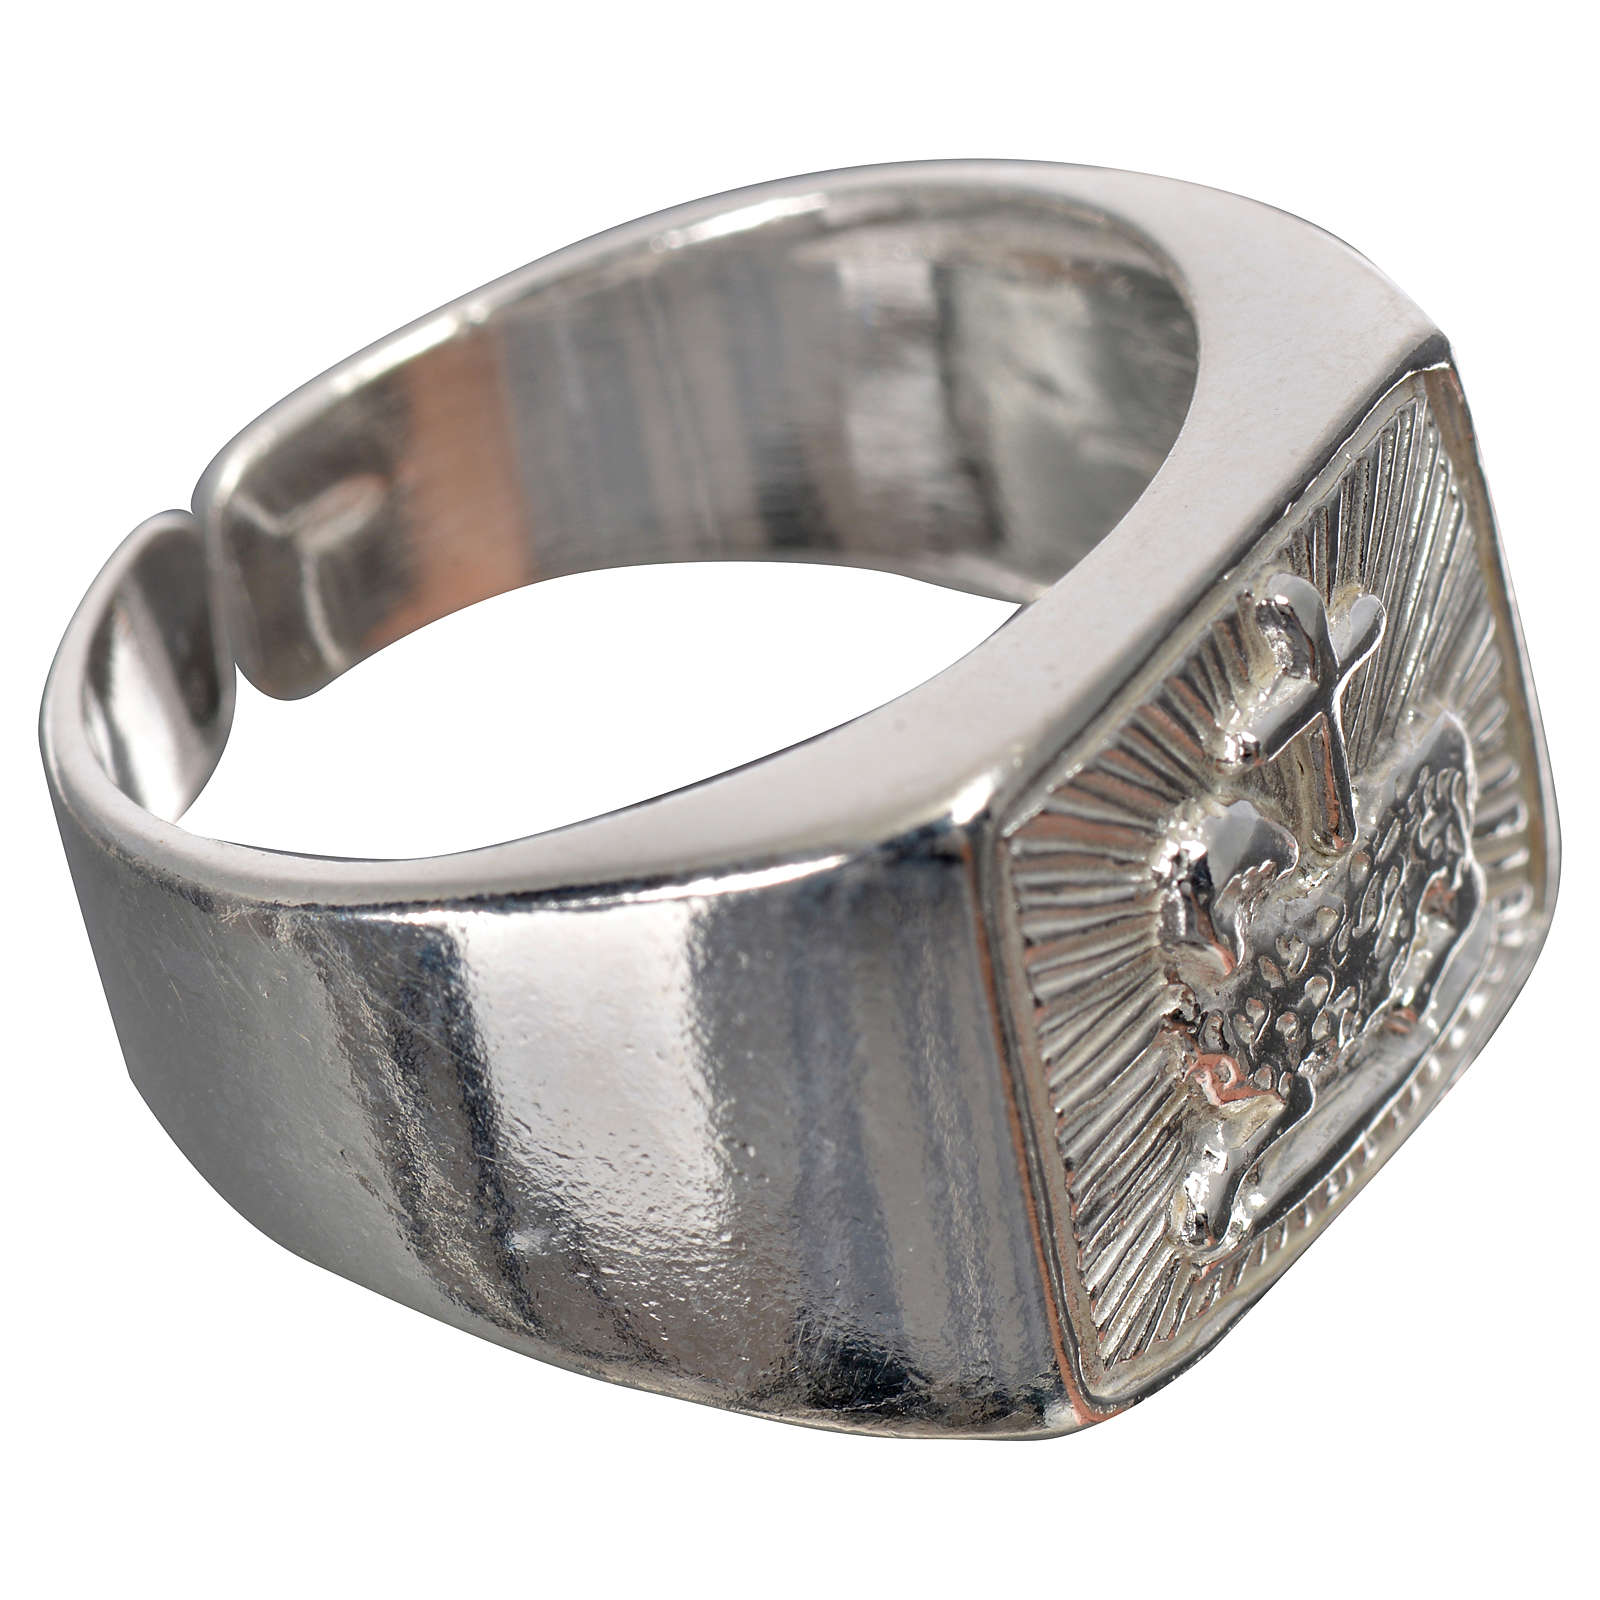 Bishop's ring in 925 silver, polished, with lamb 3